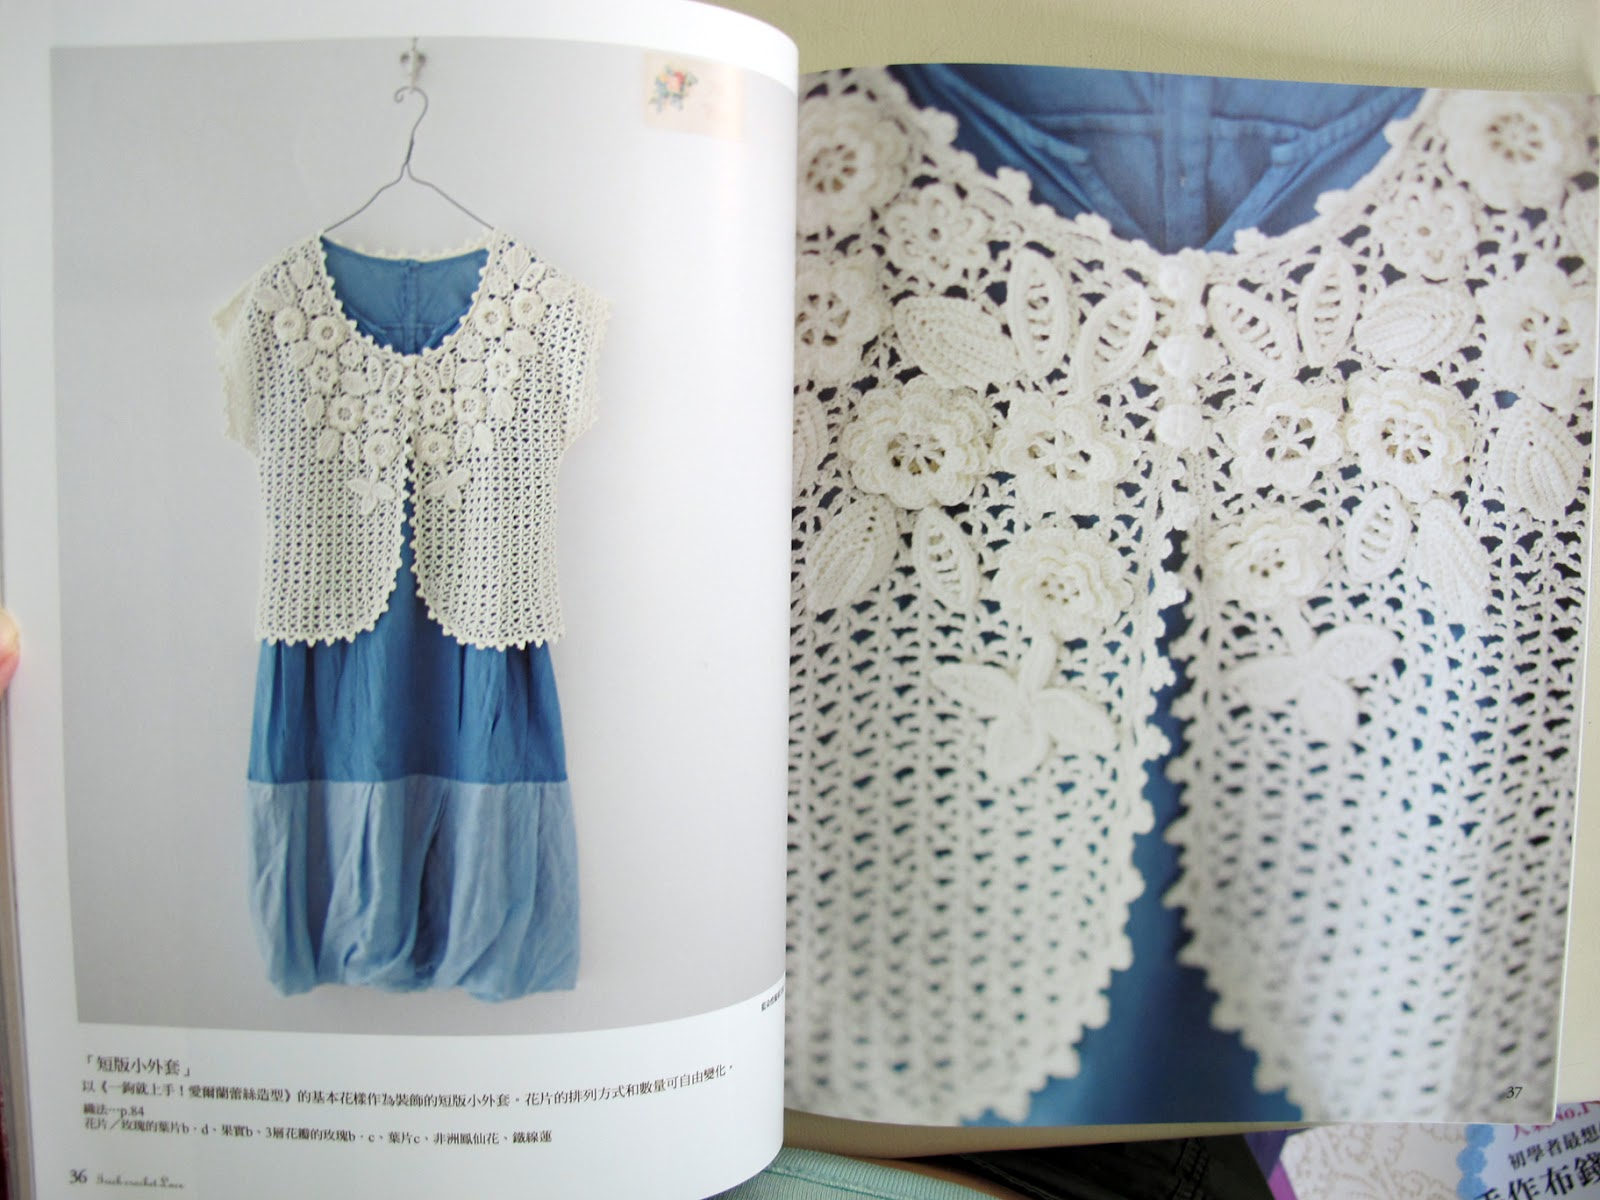 Crocheting Books : ... .com: Japanese Crochet Book: I want to try Irish Crochet Lace Book